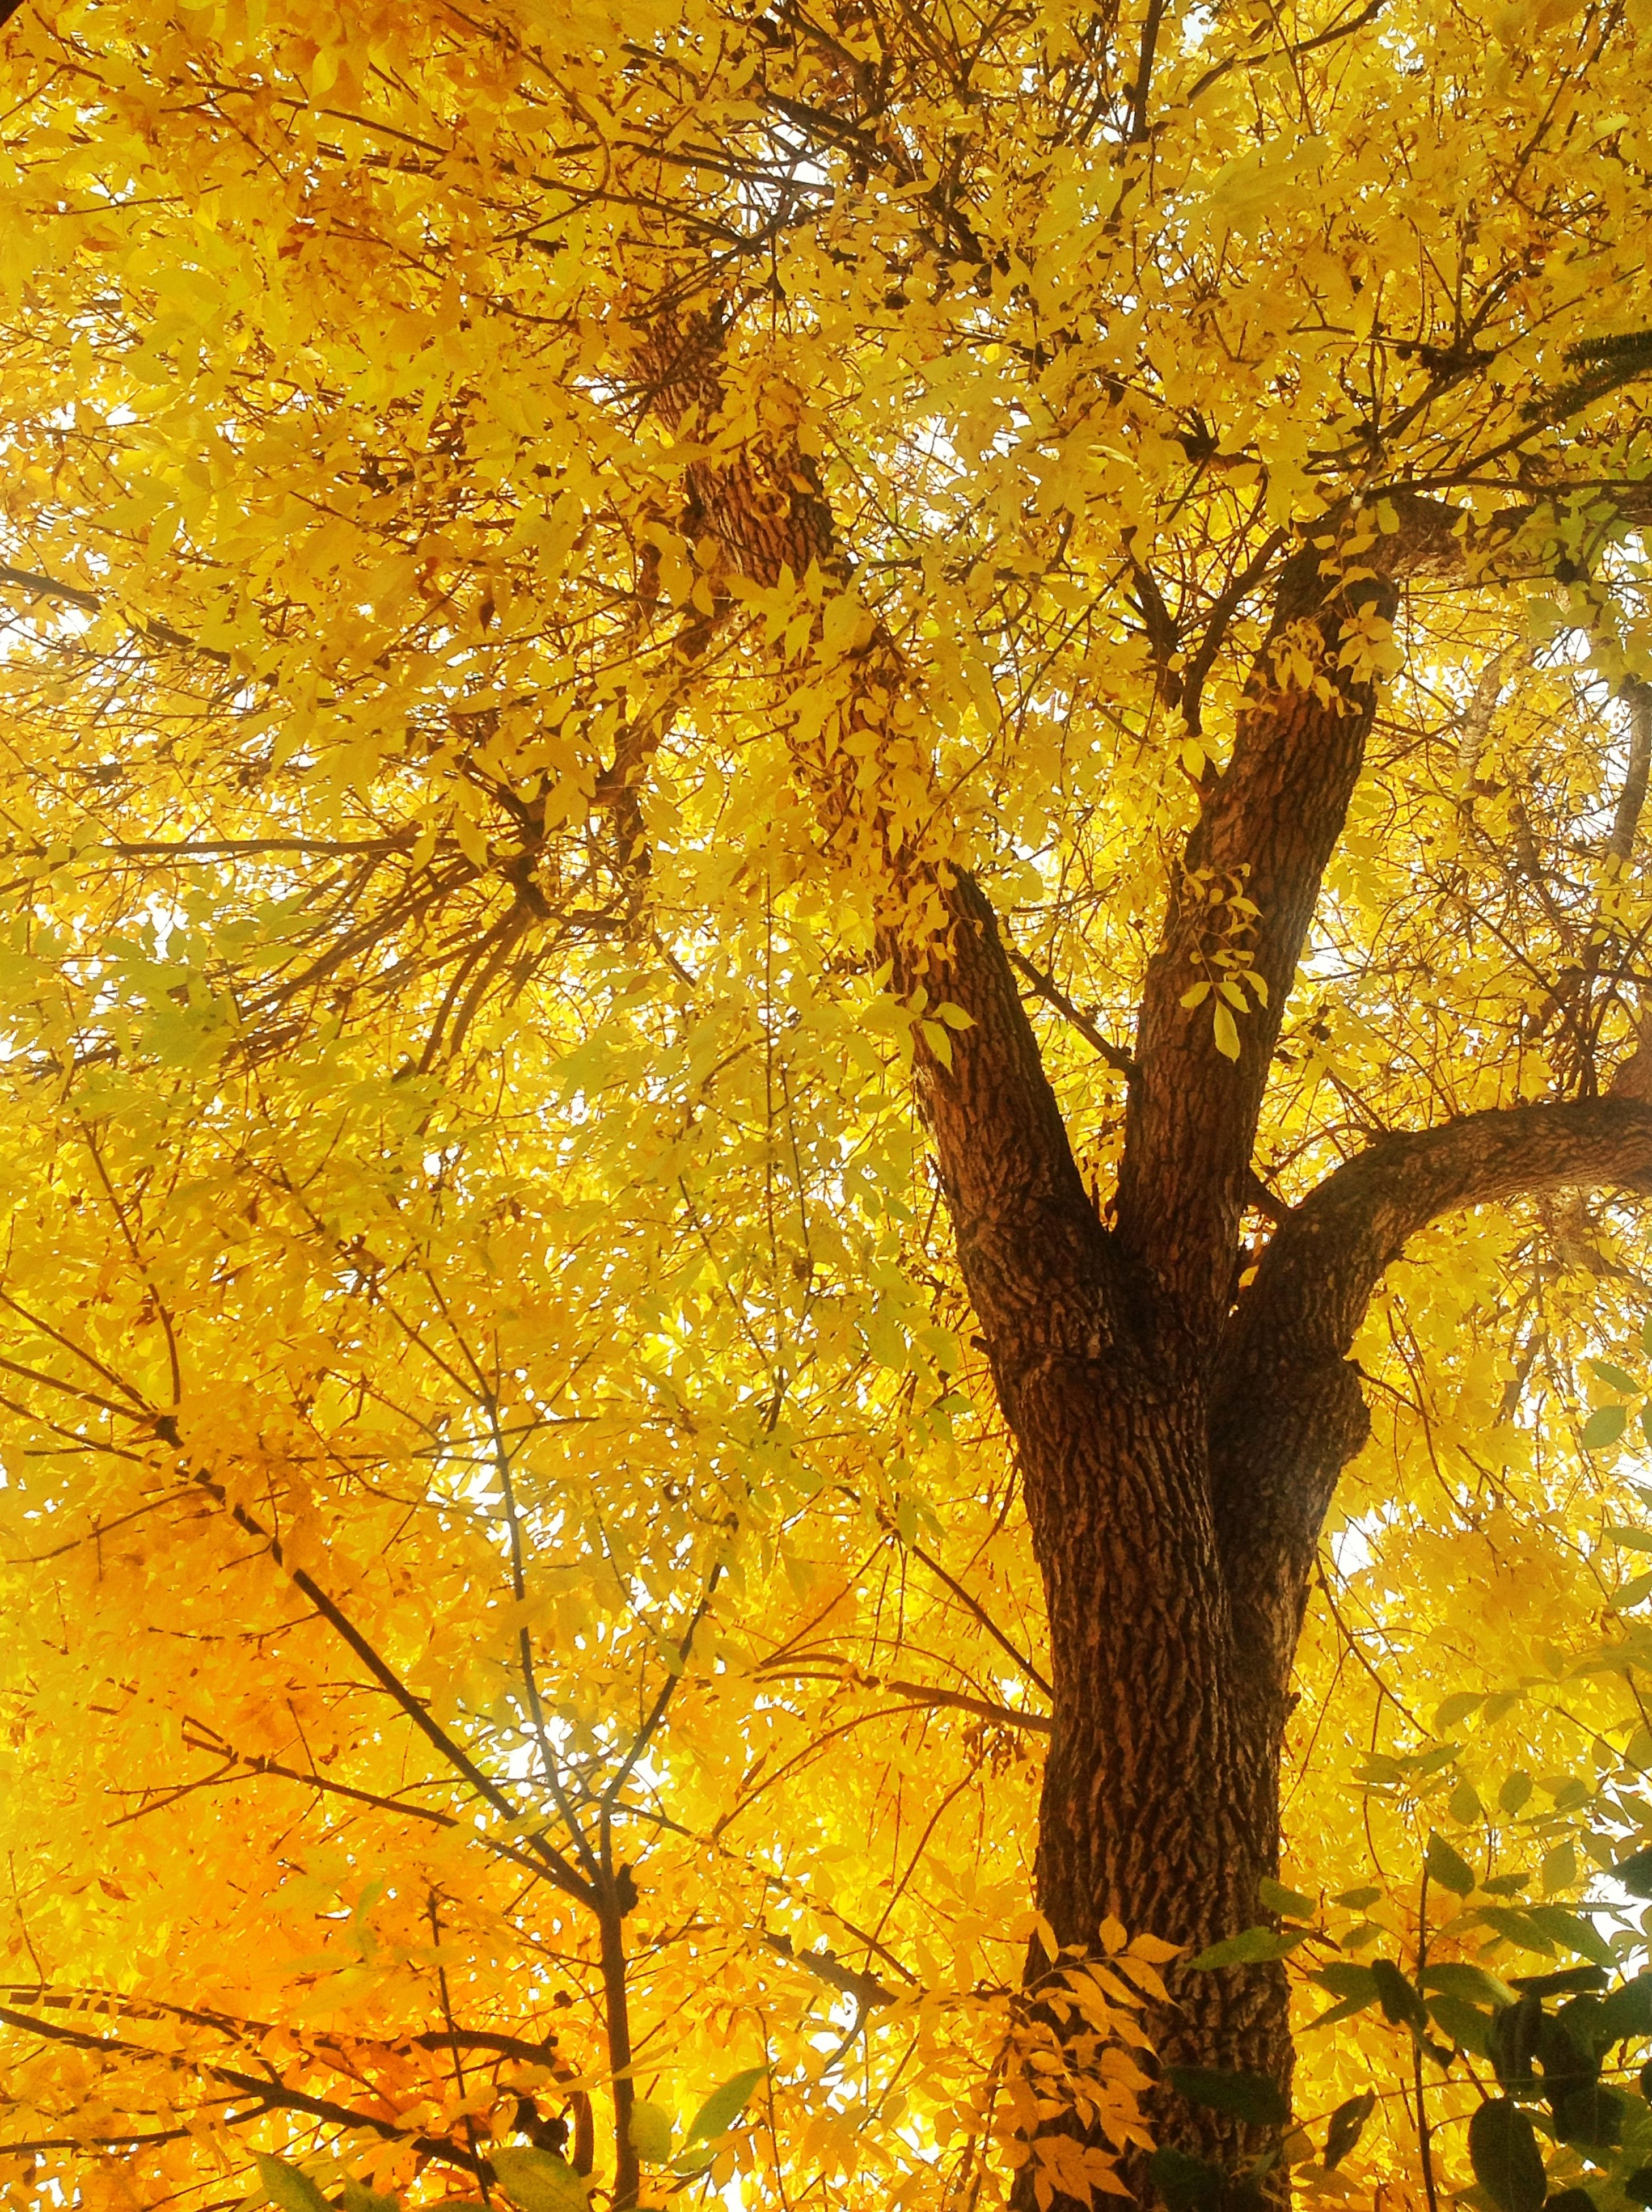 tree, yellow, low angle view, branch, autumn, growth, nature, change, beauty in nature, tree trunk, season, tranquility, full frame, scenics, backgrounds, orange color, leaf, outdoors, day, no people